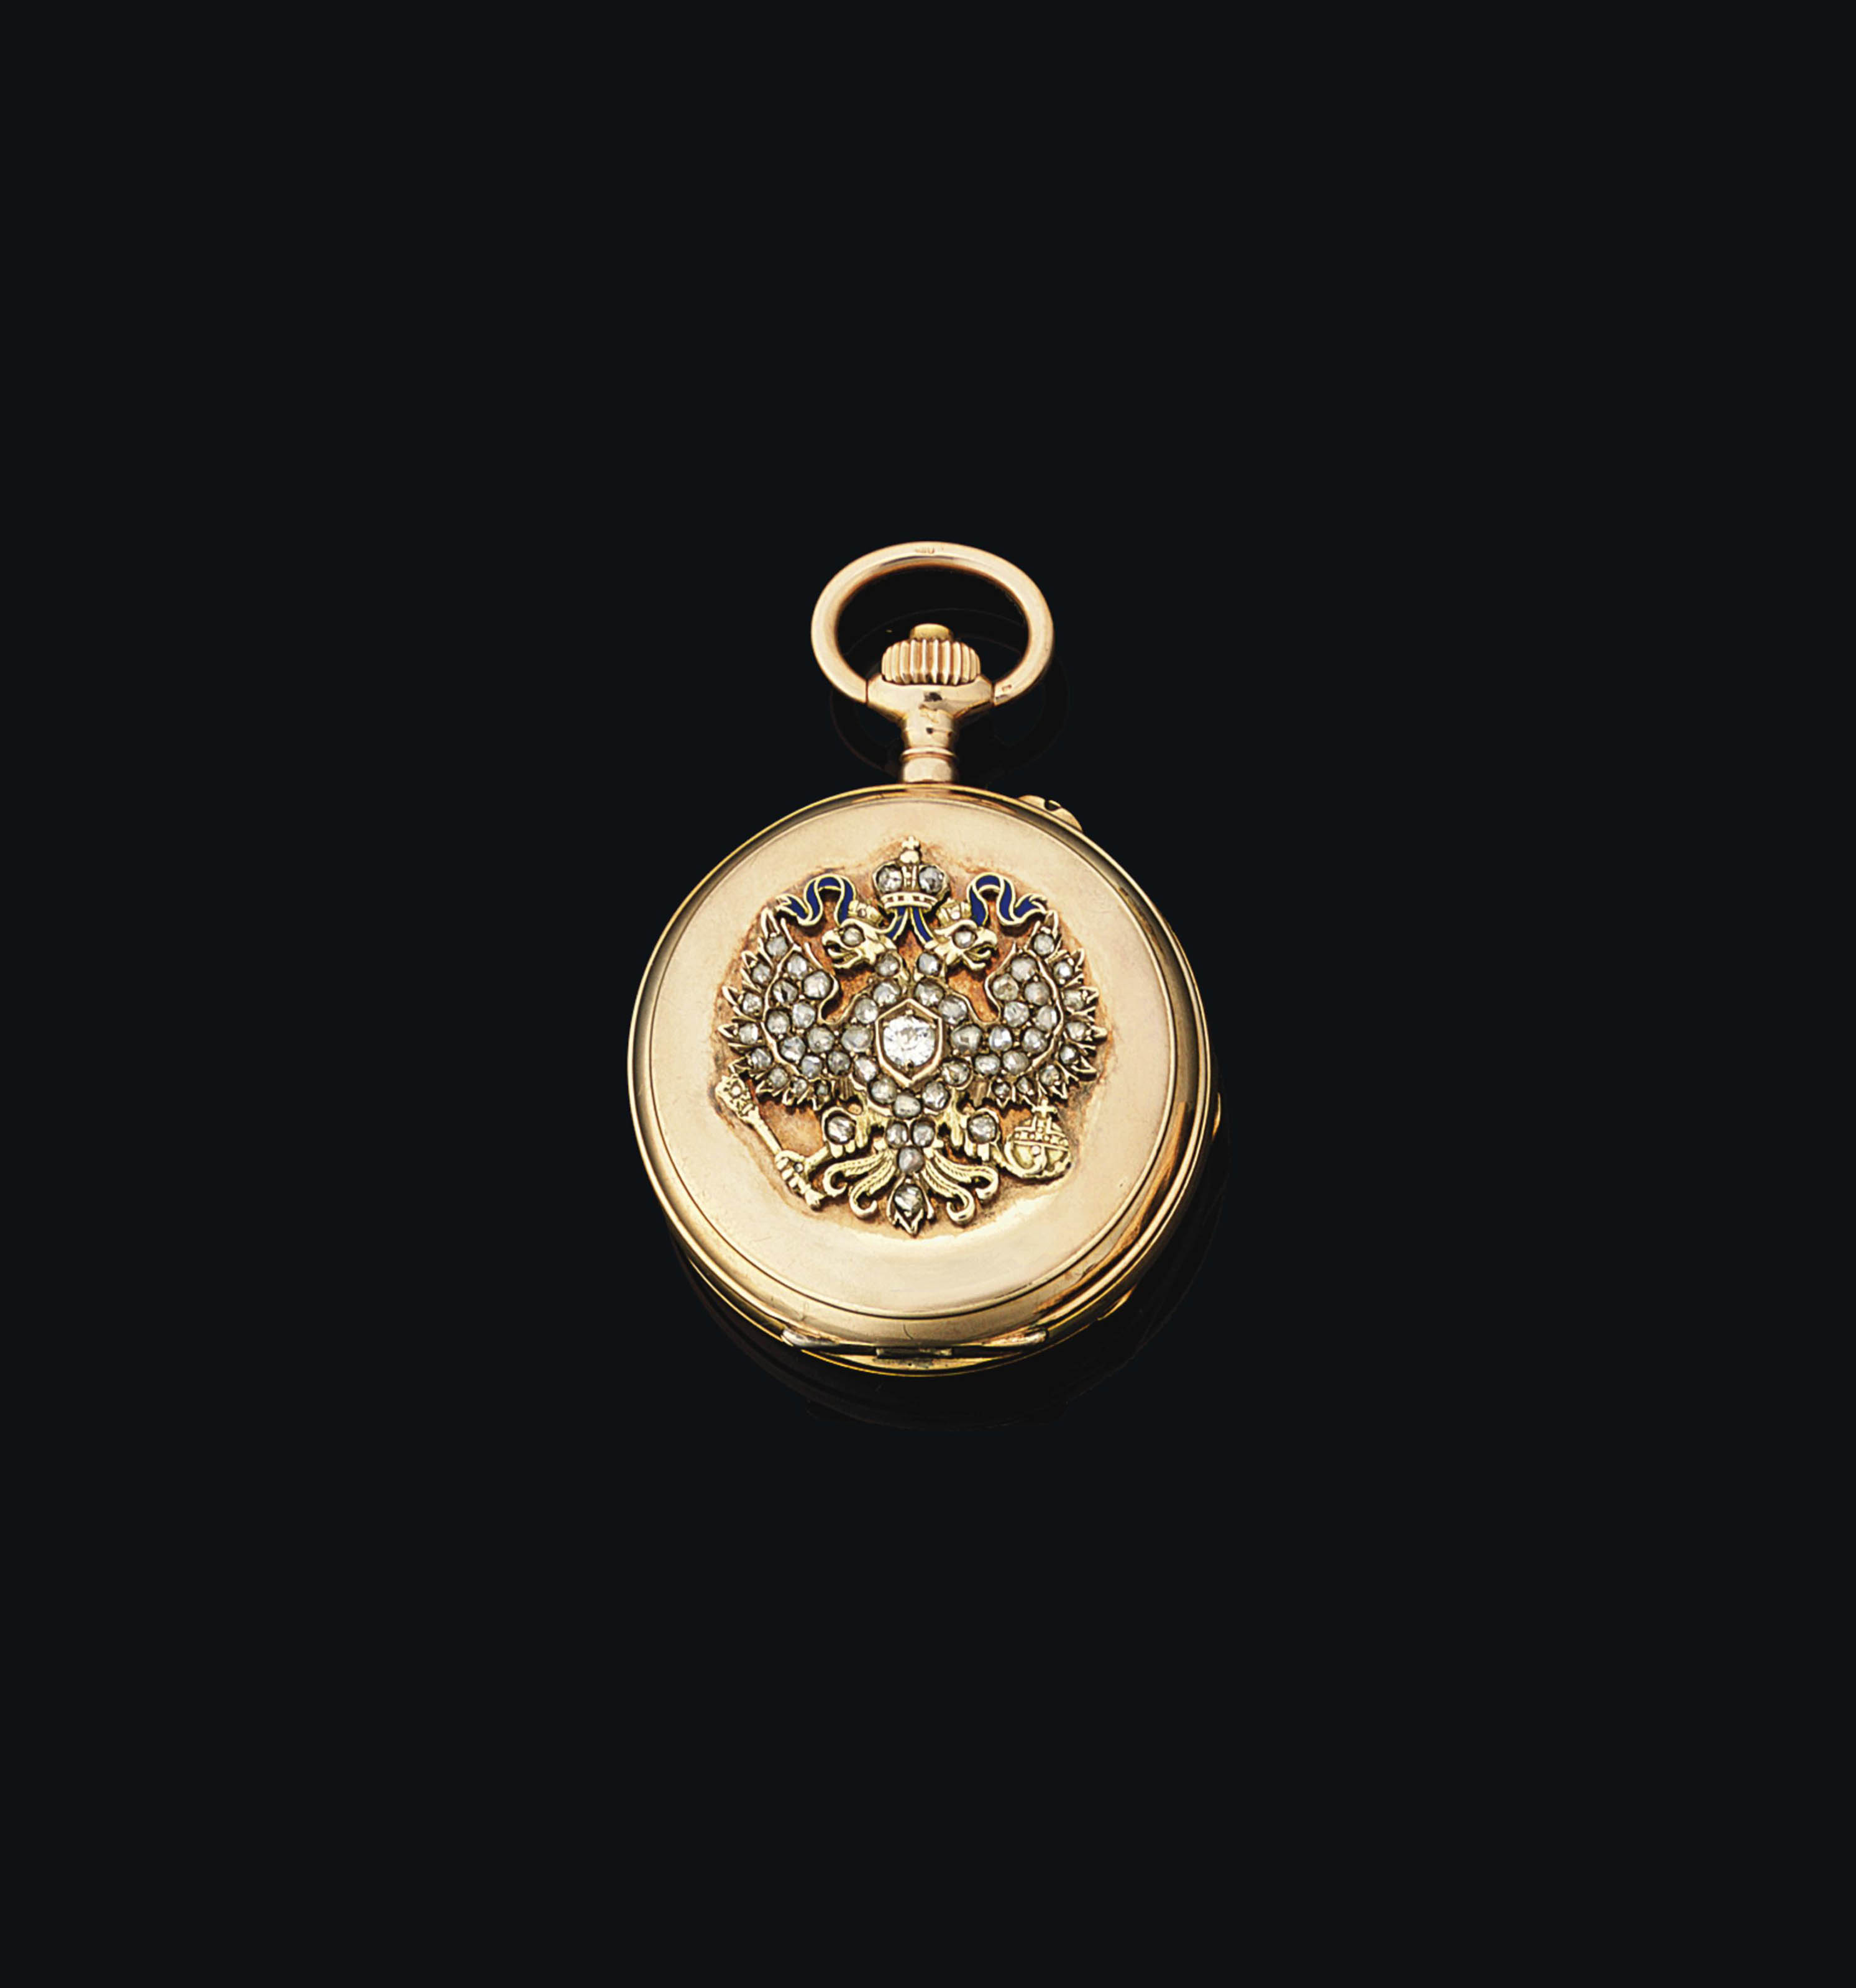 A JEWELLED TWO-COLOUR GOLD AND GUILLOCHÉ ENAMEL PRESENTATION POCKET WATCH